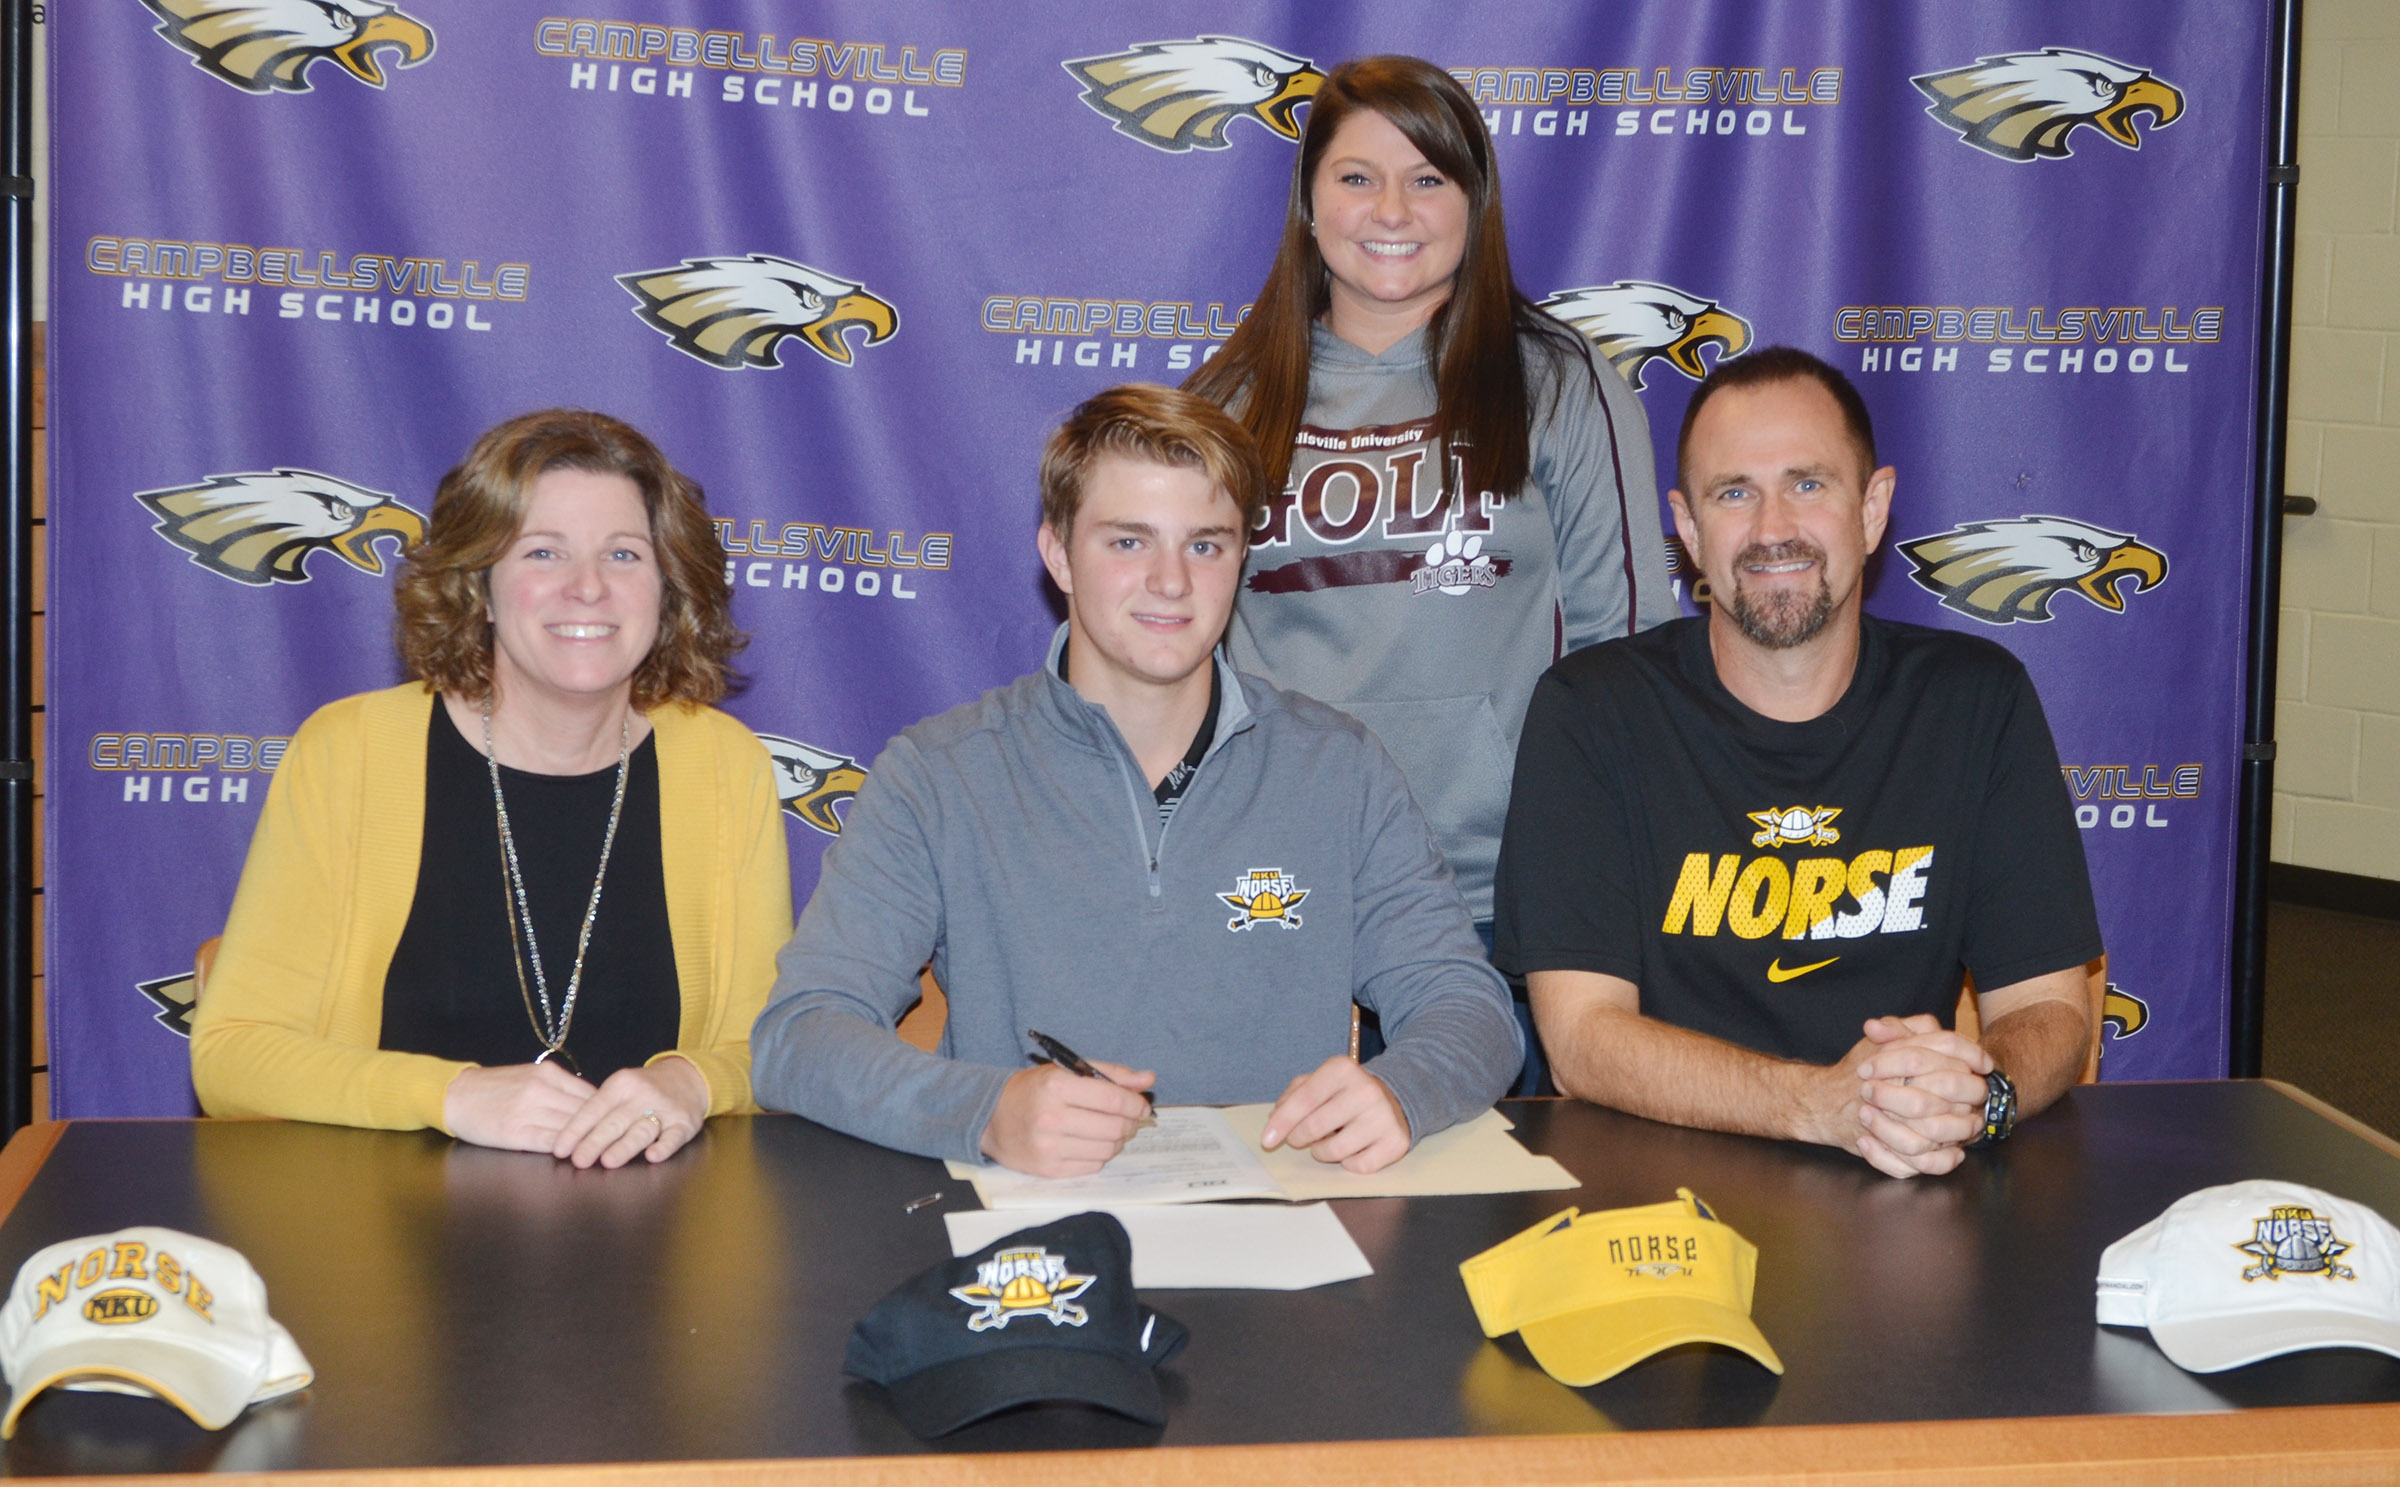 CHS boys' golf player Alex Doss will continue his academic and athletic career at Northern Kentucky University. He recently celebrated the announcement in a reception with his family and friends. Pictured with Doss are his parents, Steve and Dee, and CHS boys' golf coach Cassidy Decker.